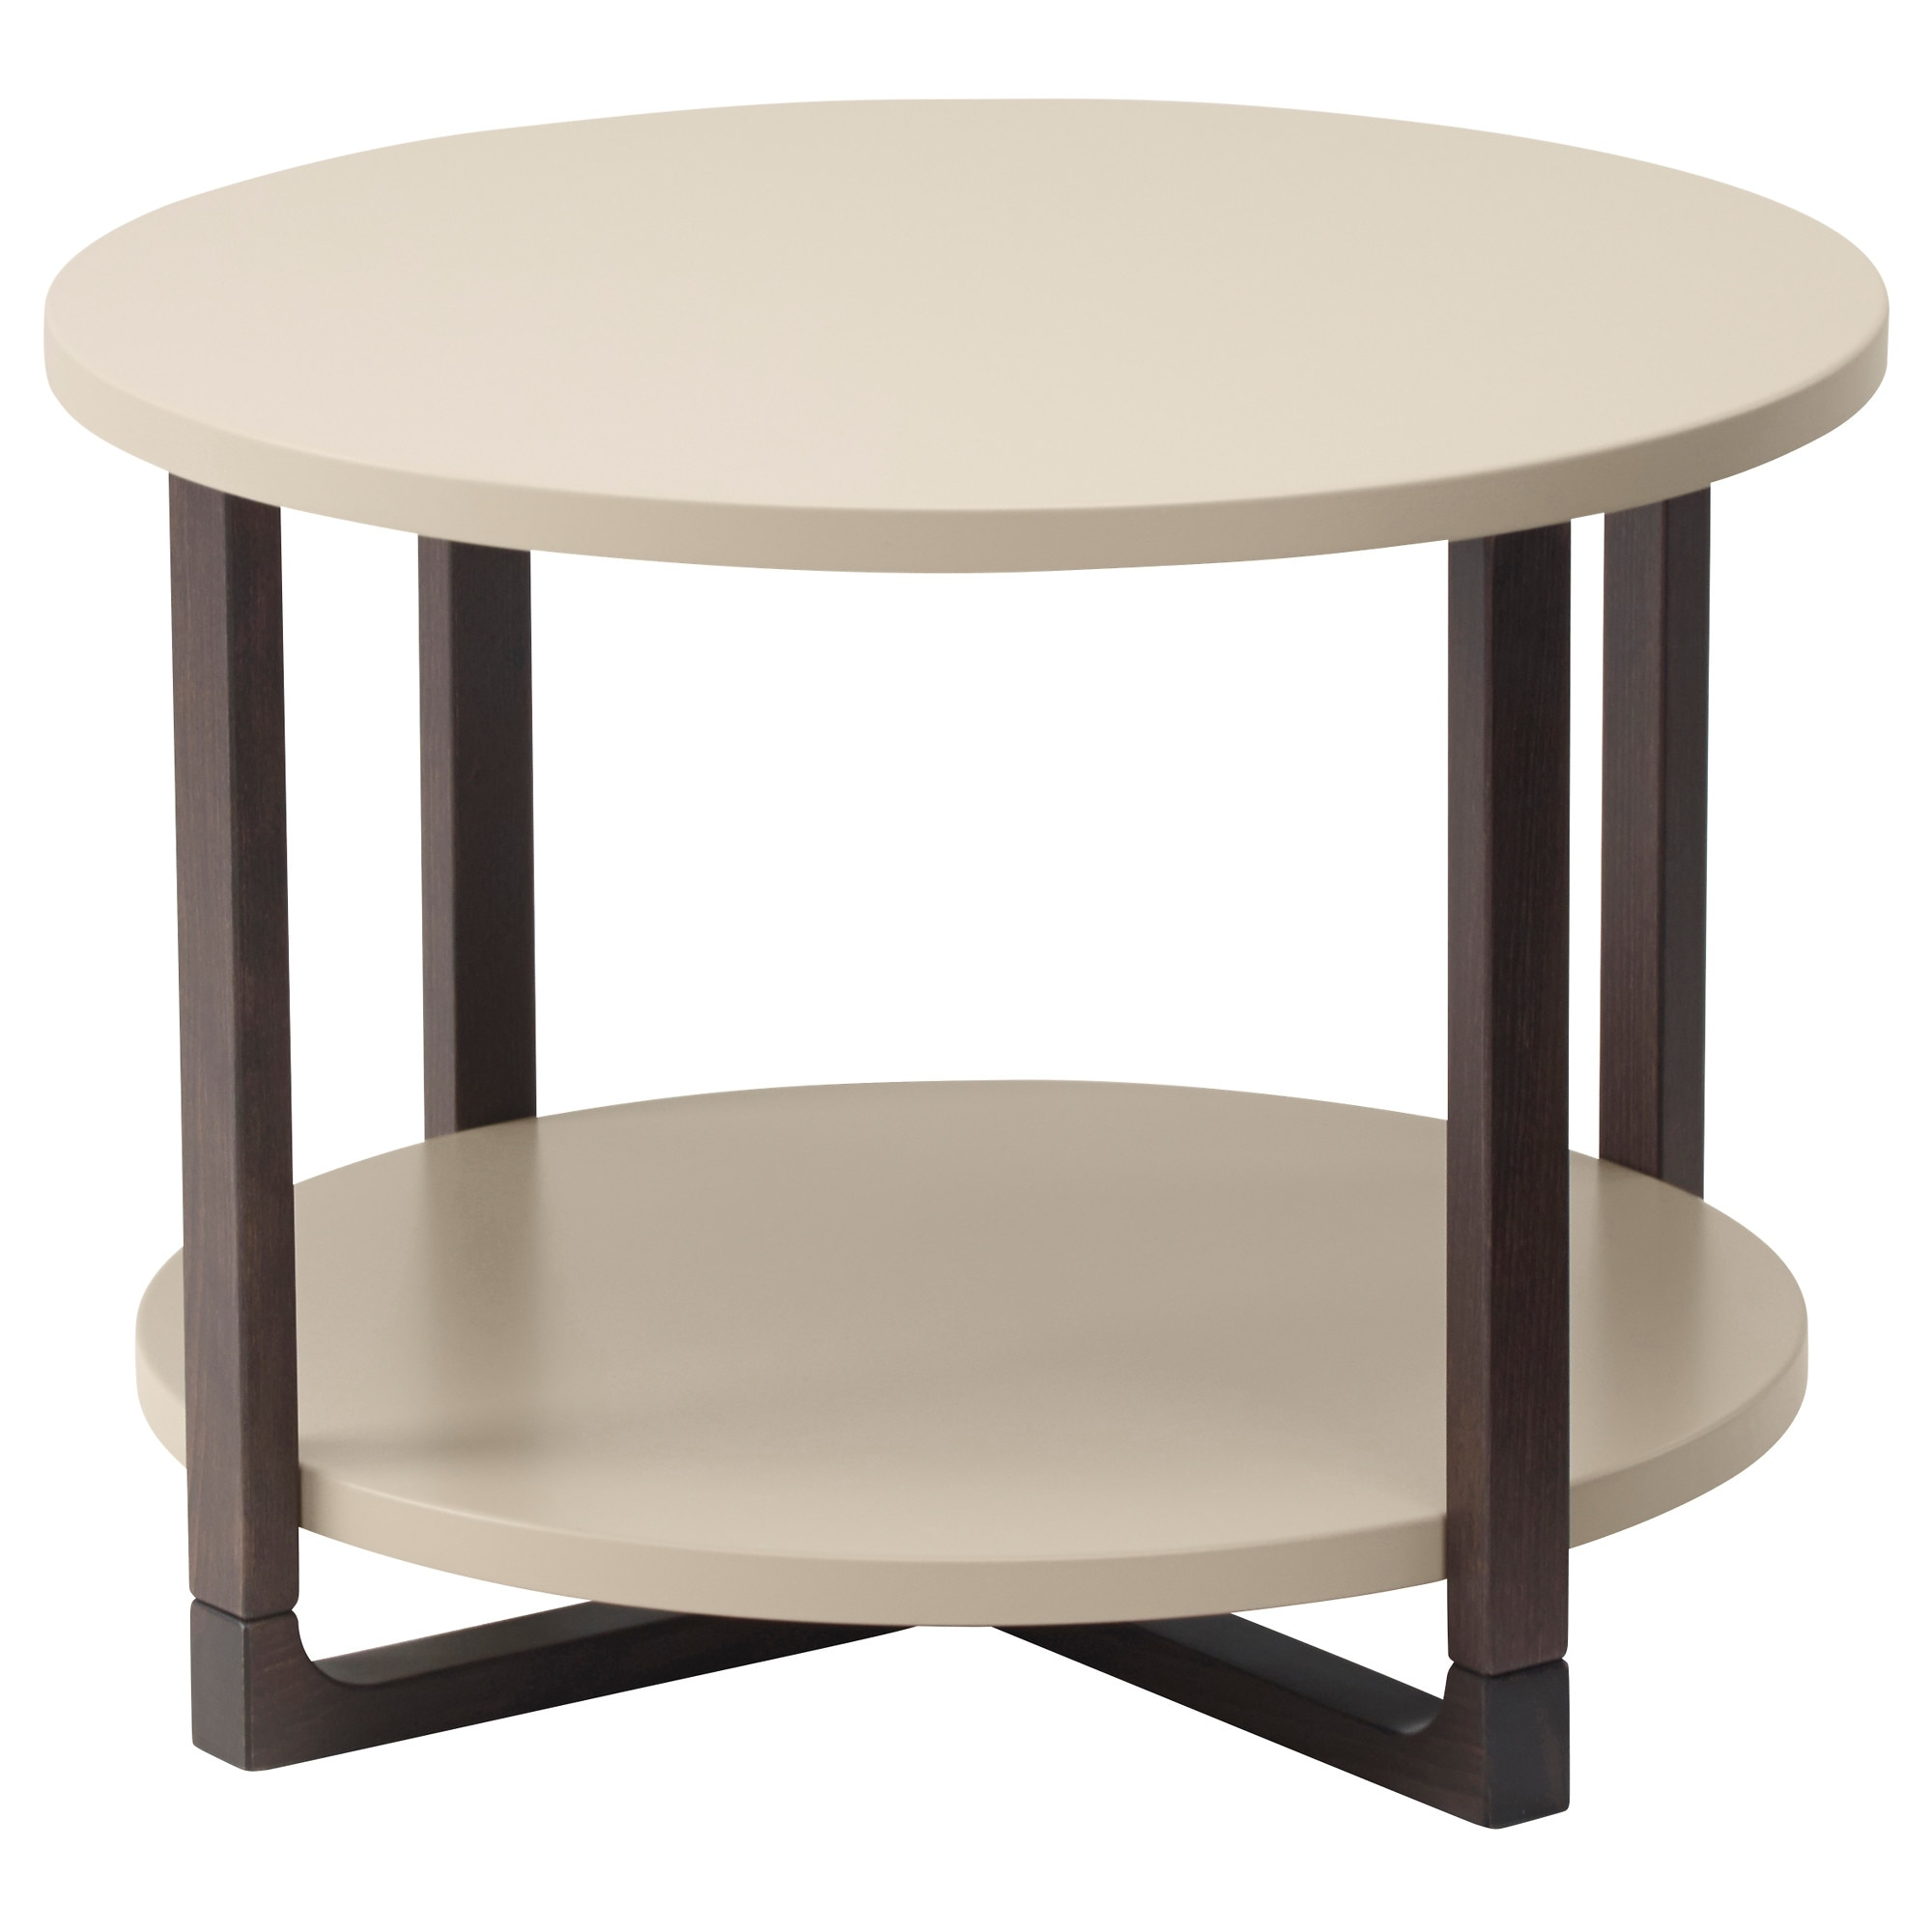 Coffee tables console tables ikea rissna side table beige height 17 34 diameter 23 5 geotapseo Image collections